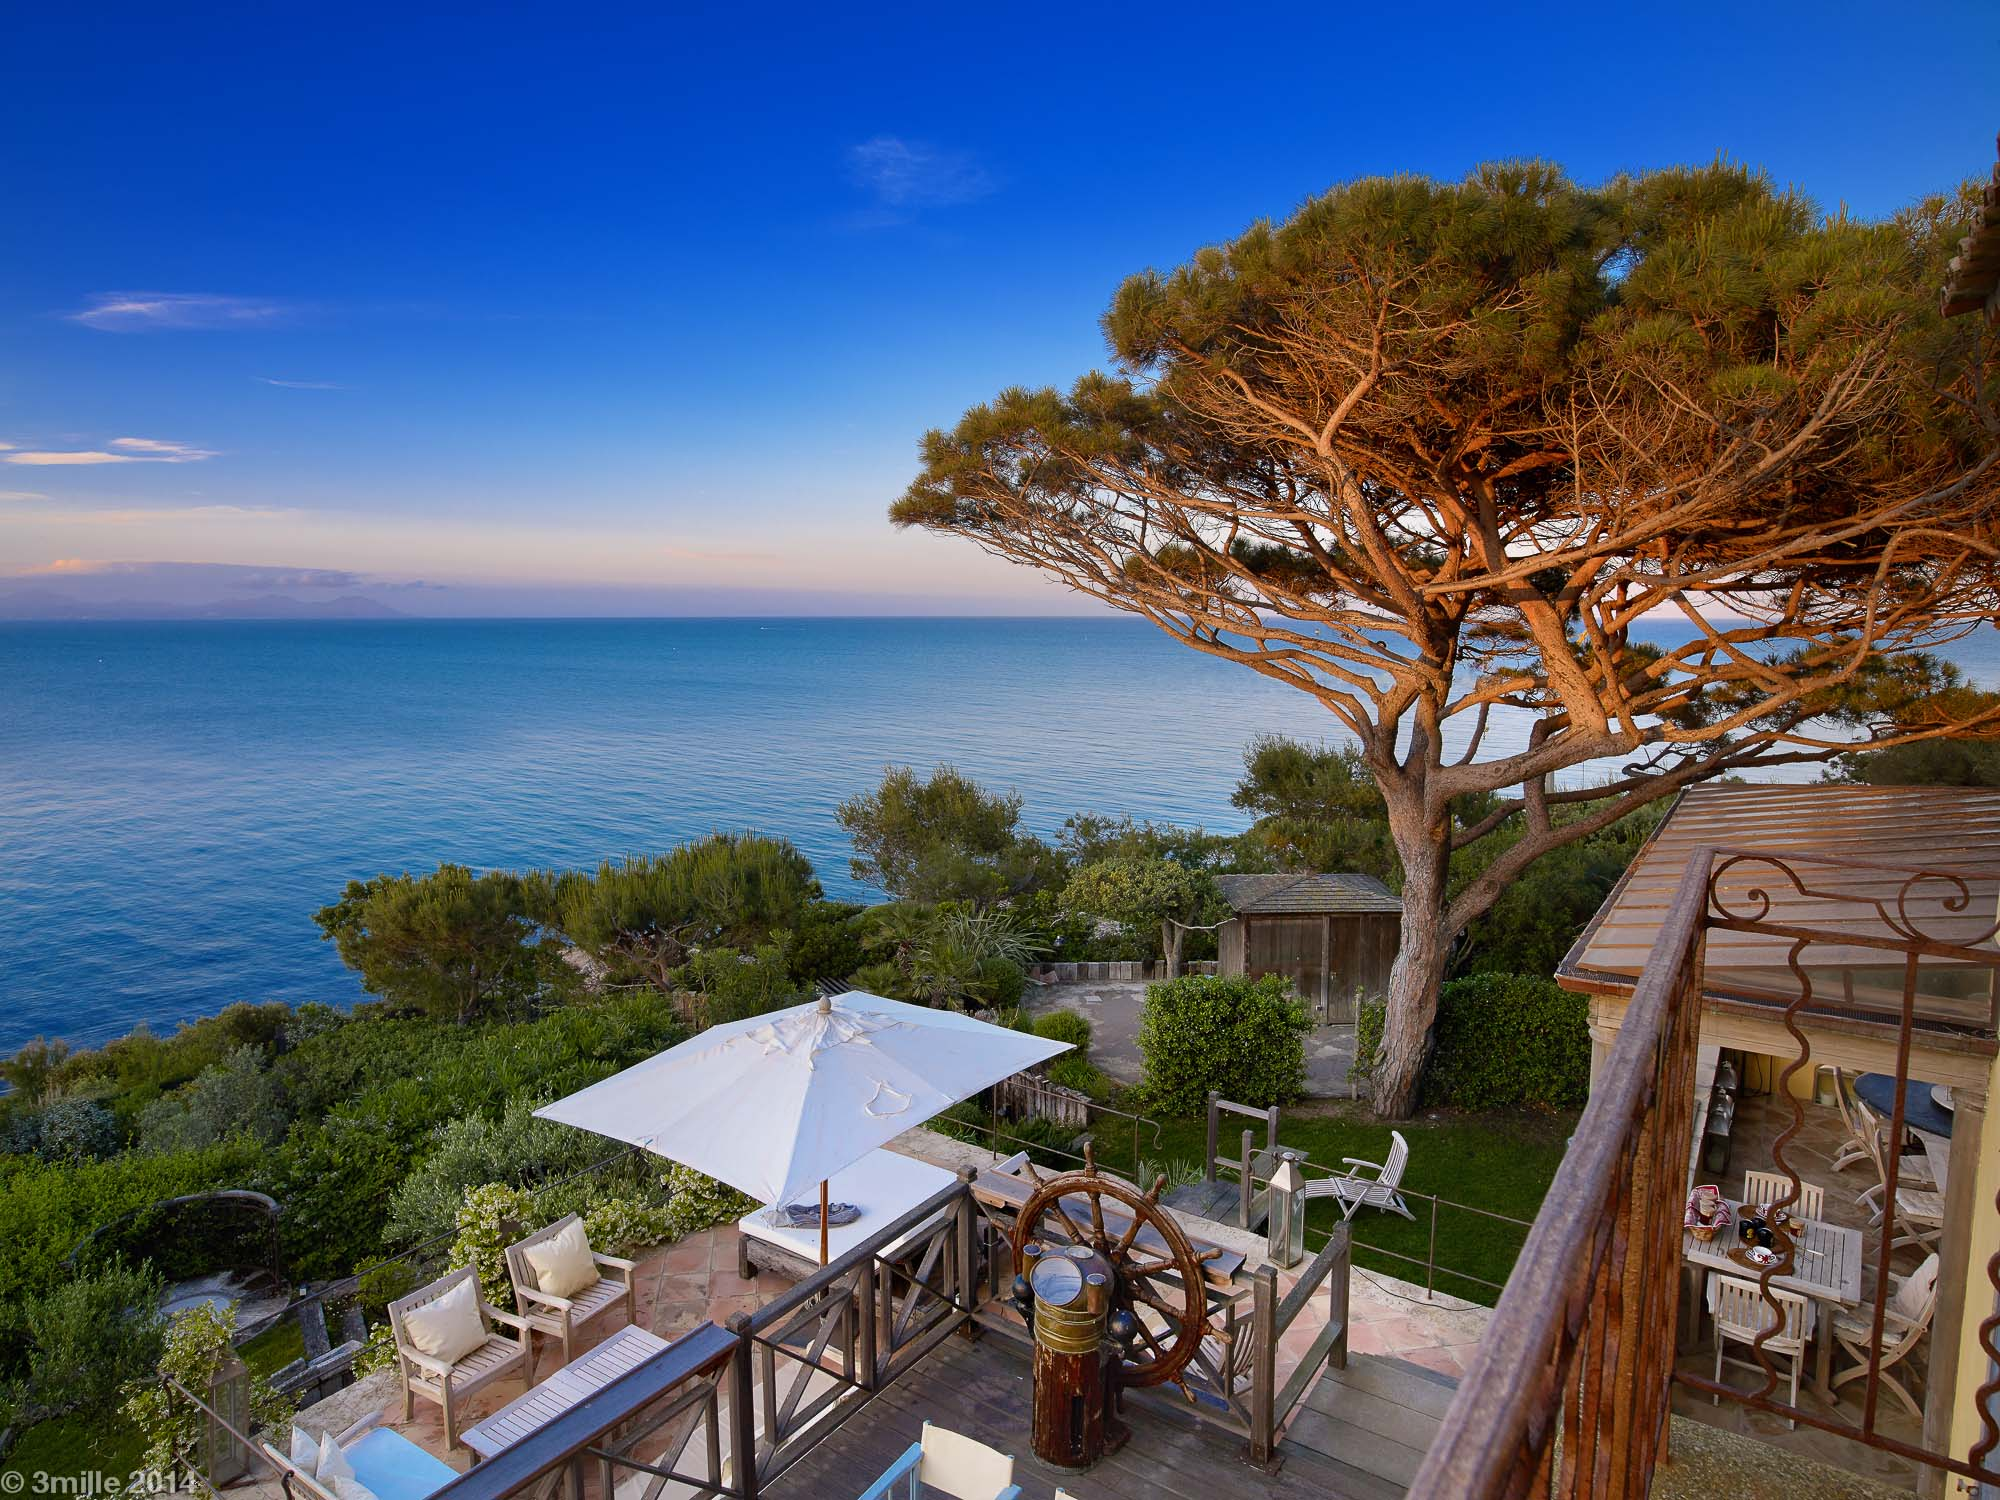 Villa per Vendita alle ore Luxury property with amazing sea views in the Parcs of Saint-Tropez Saint Tropez Saint Tropez, Provenza-Alpi-Costa Azzurra, 83990 Francia